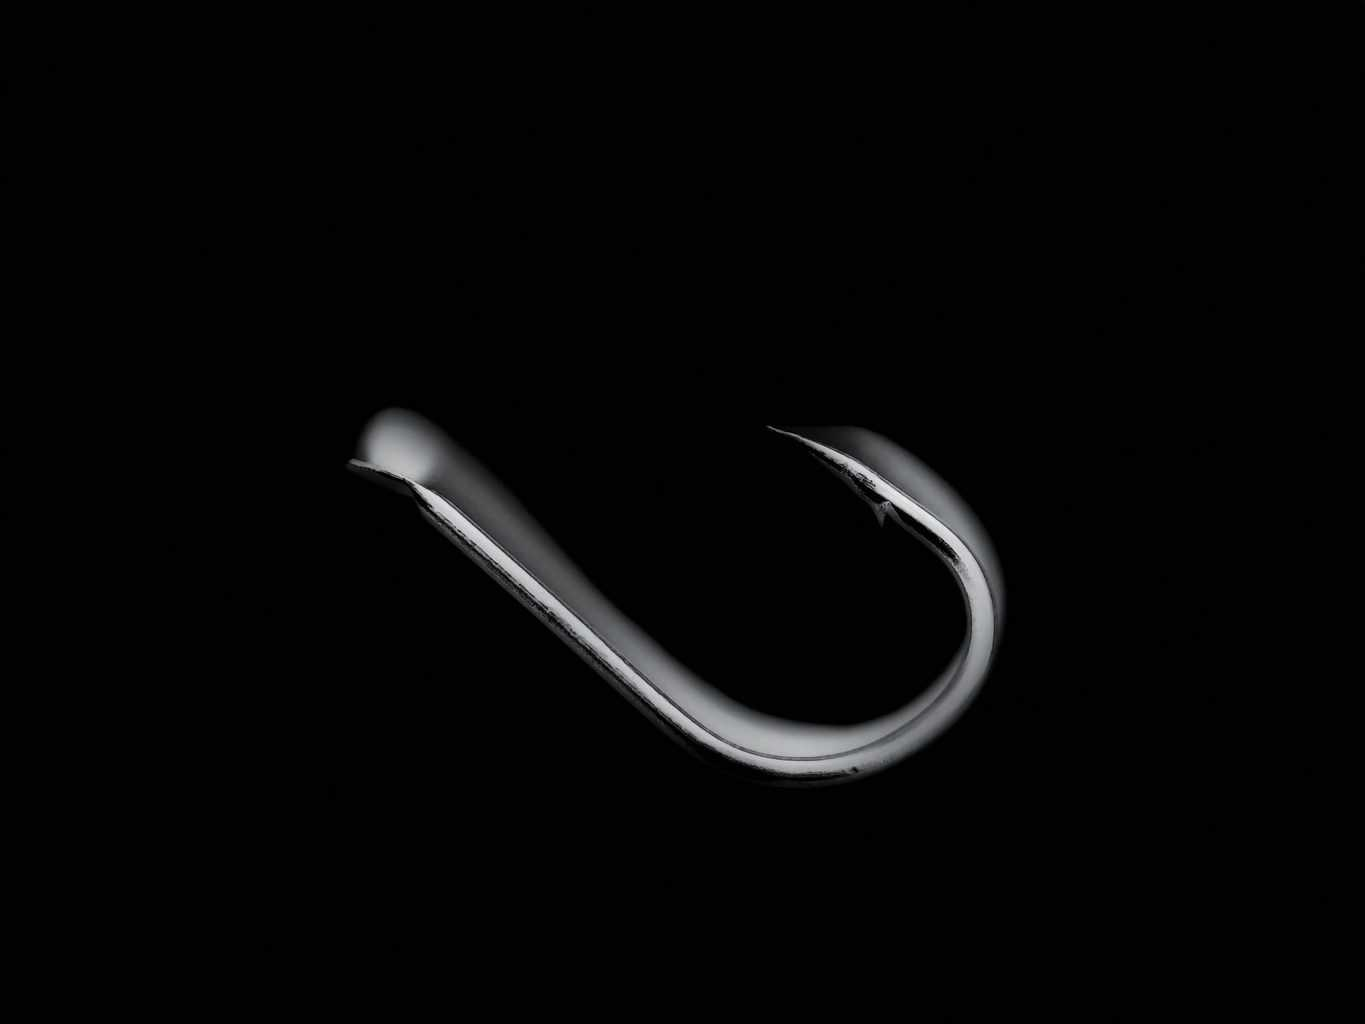 Fishing hook used for snagging fish close up